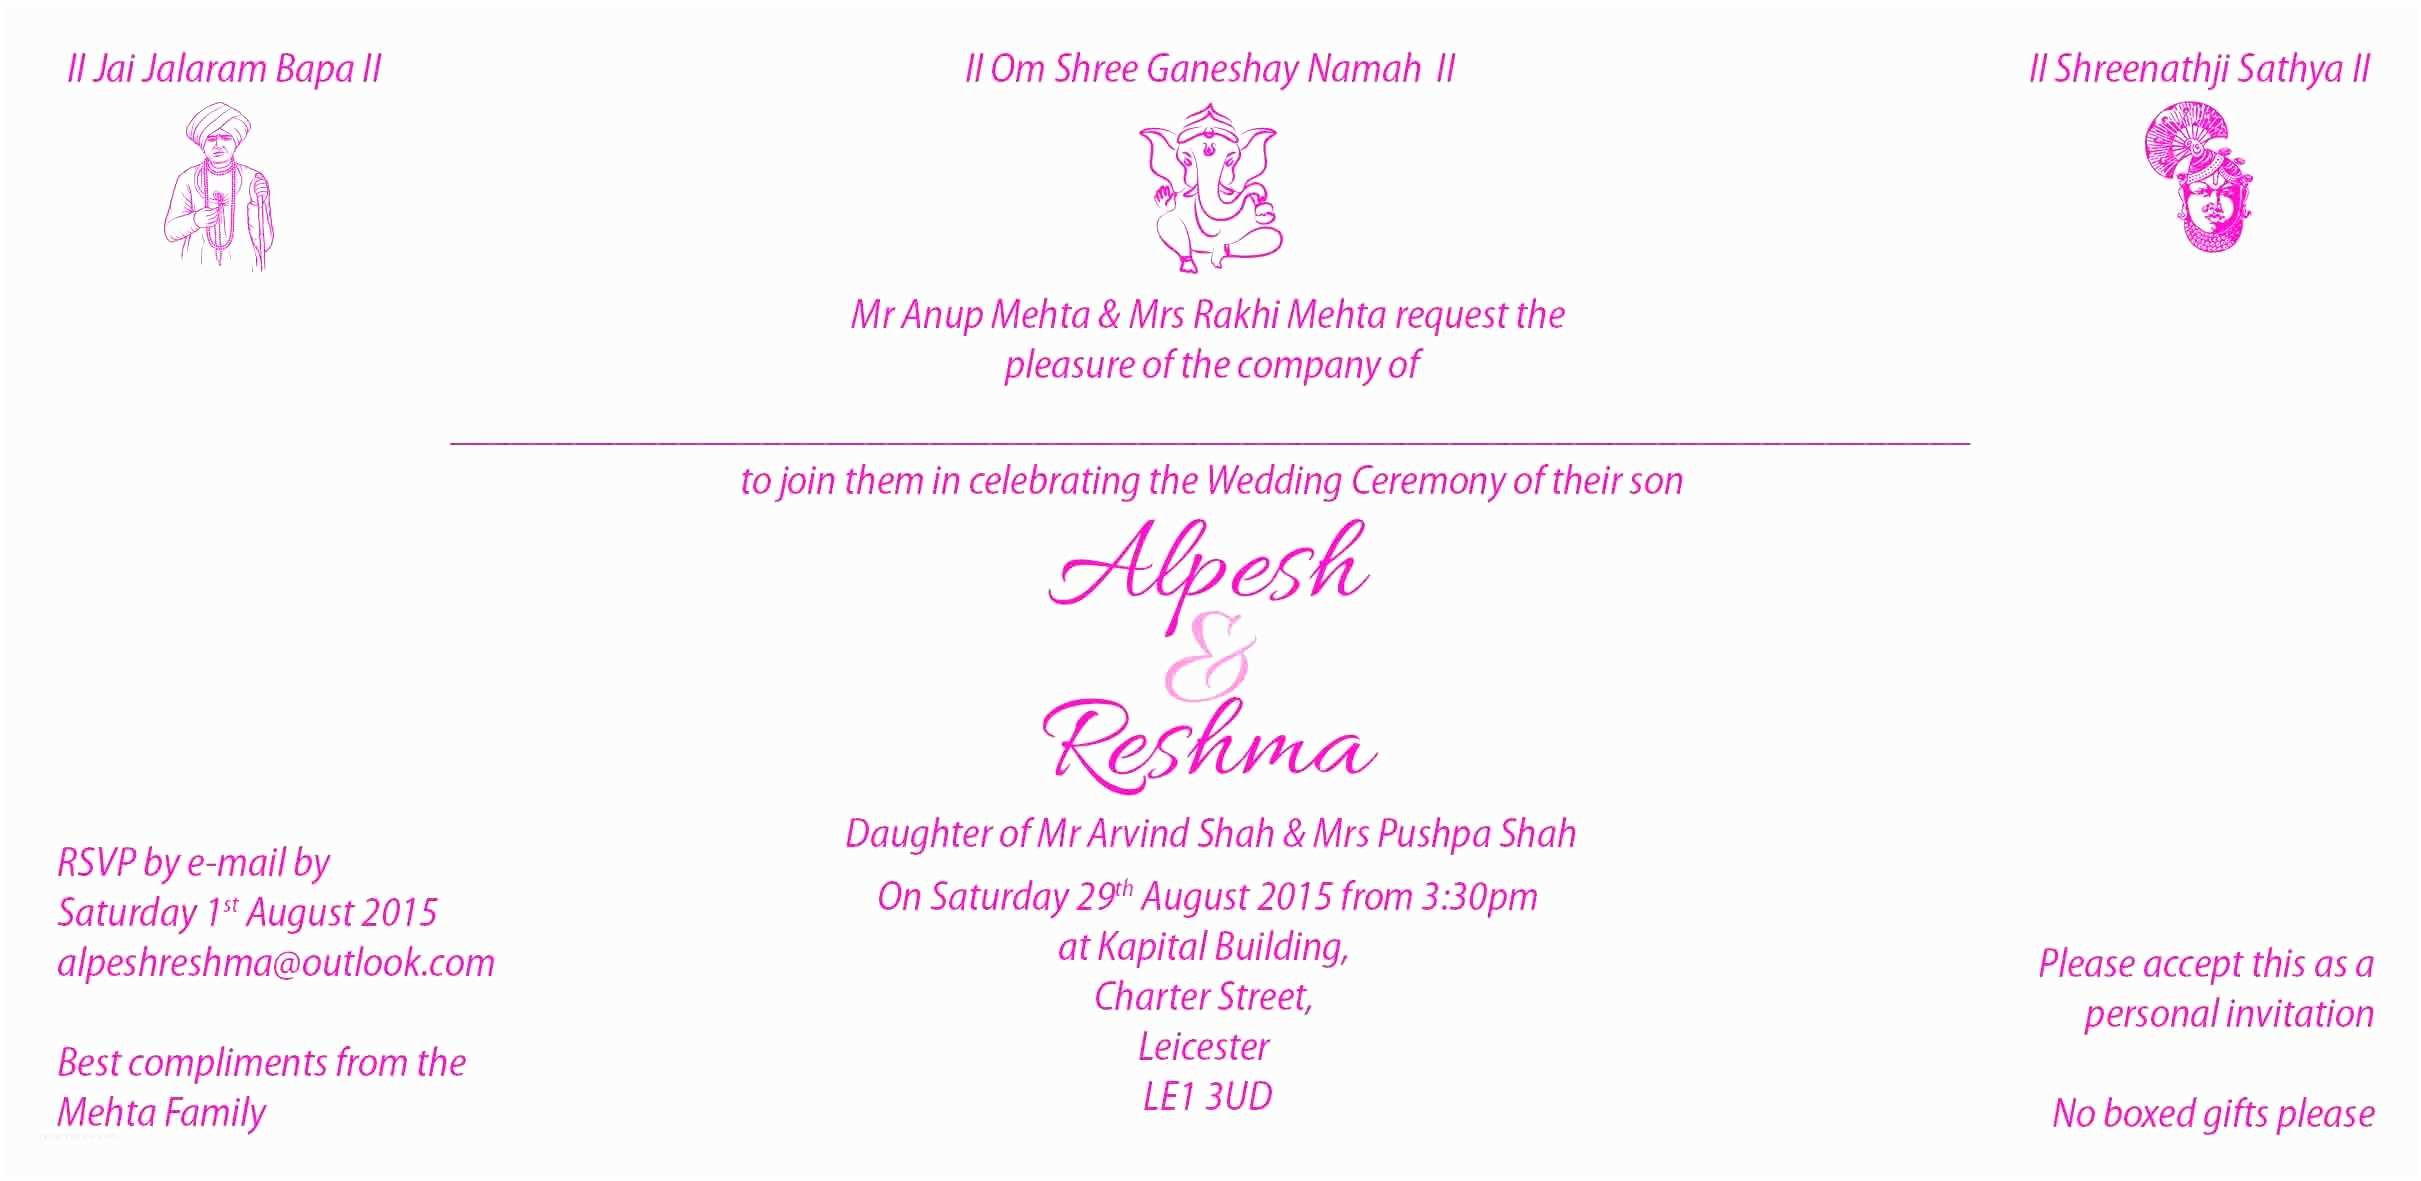 Personal Wedding Invitation Personal Wedding Invitation Wordings for Friends